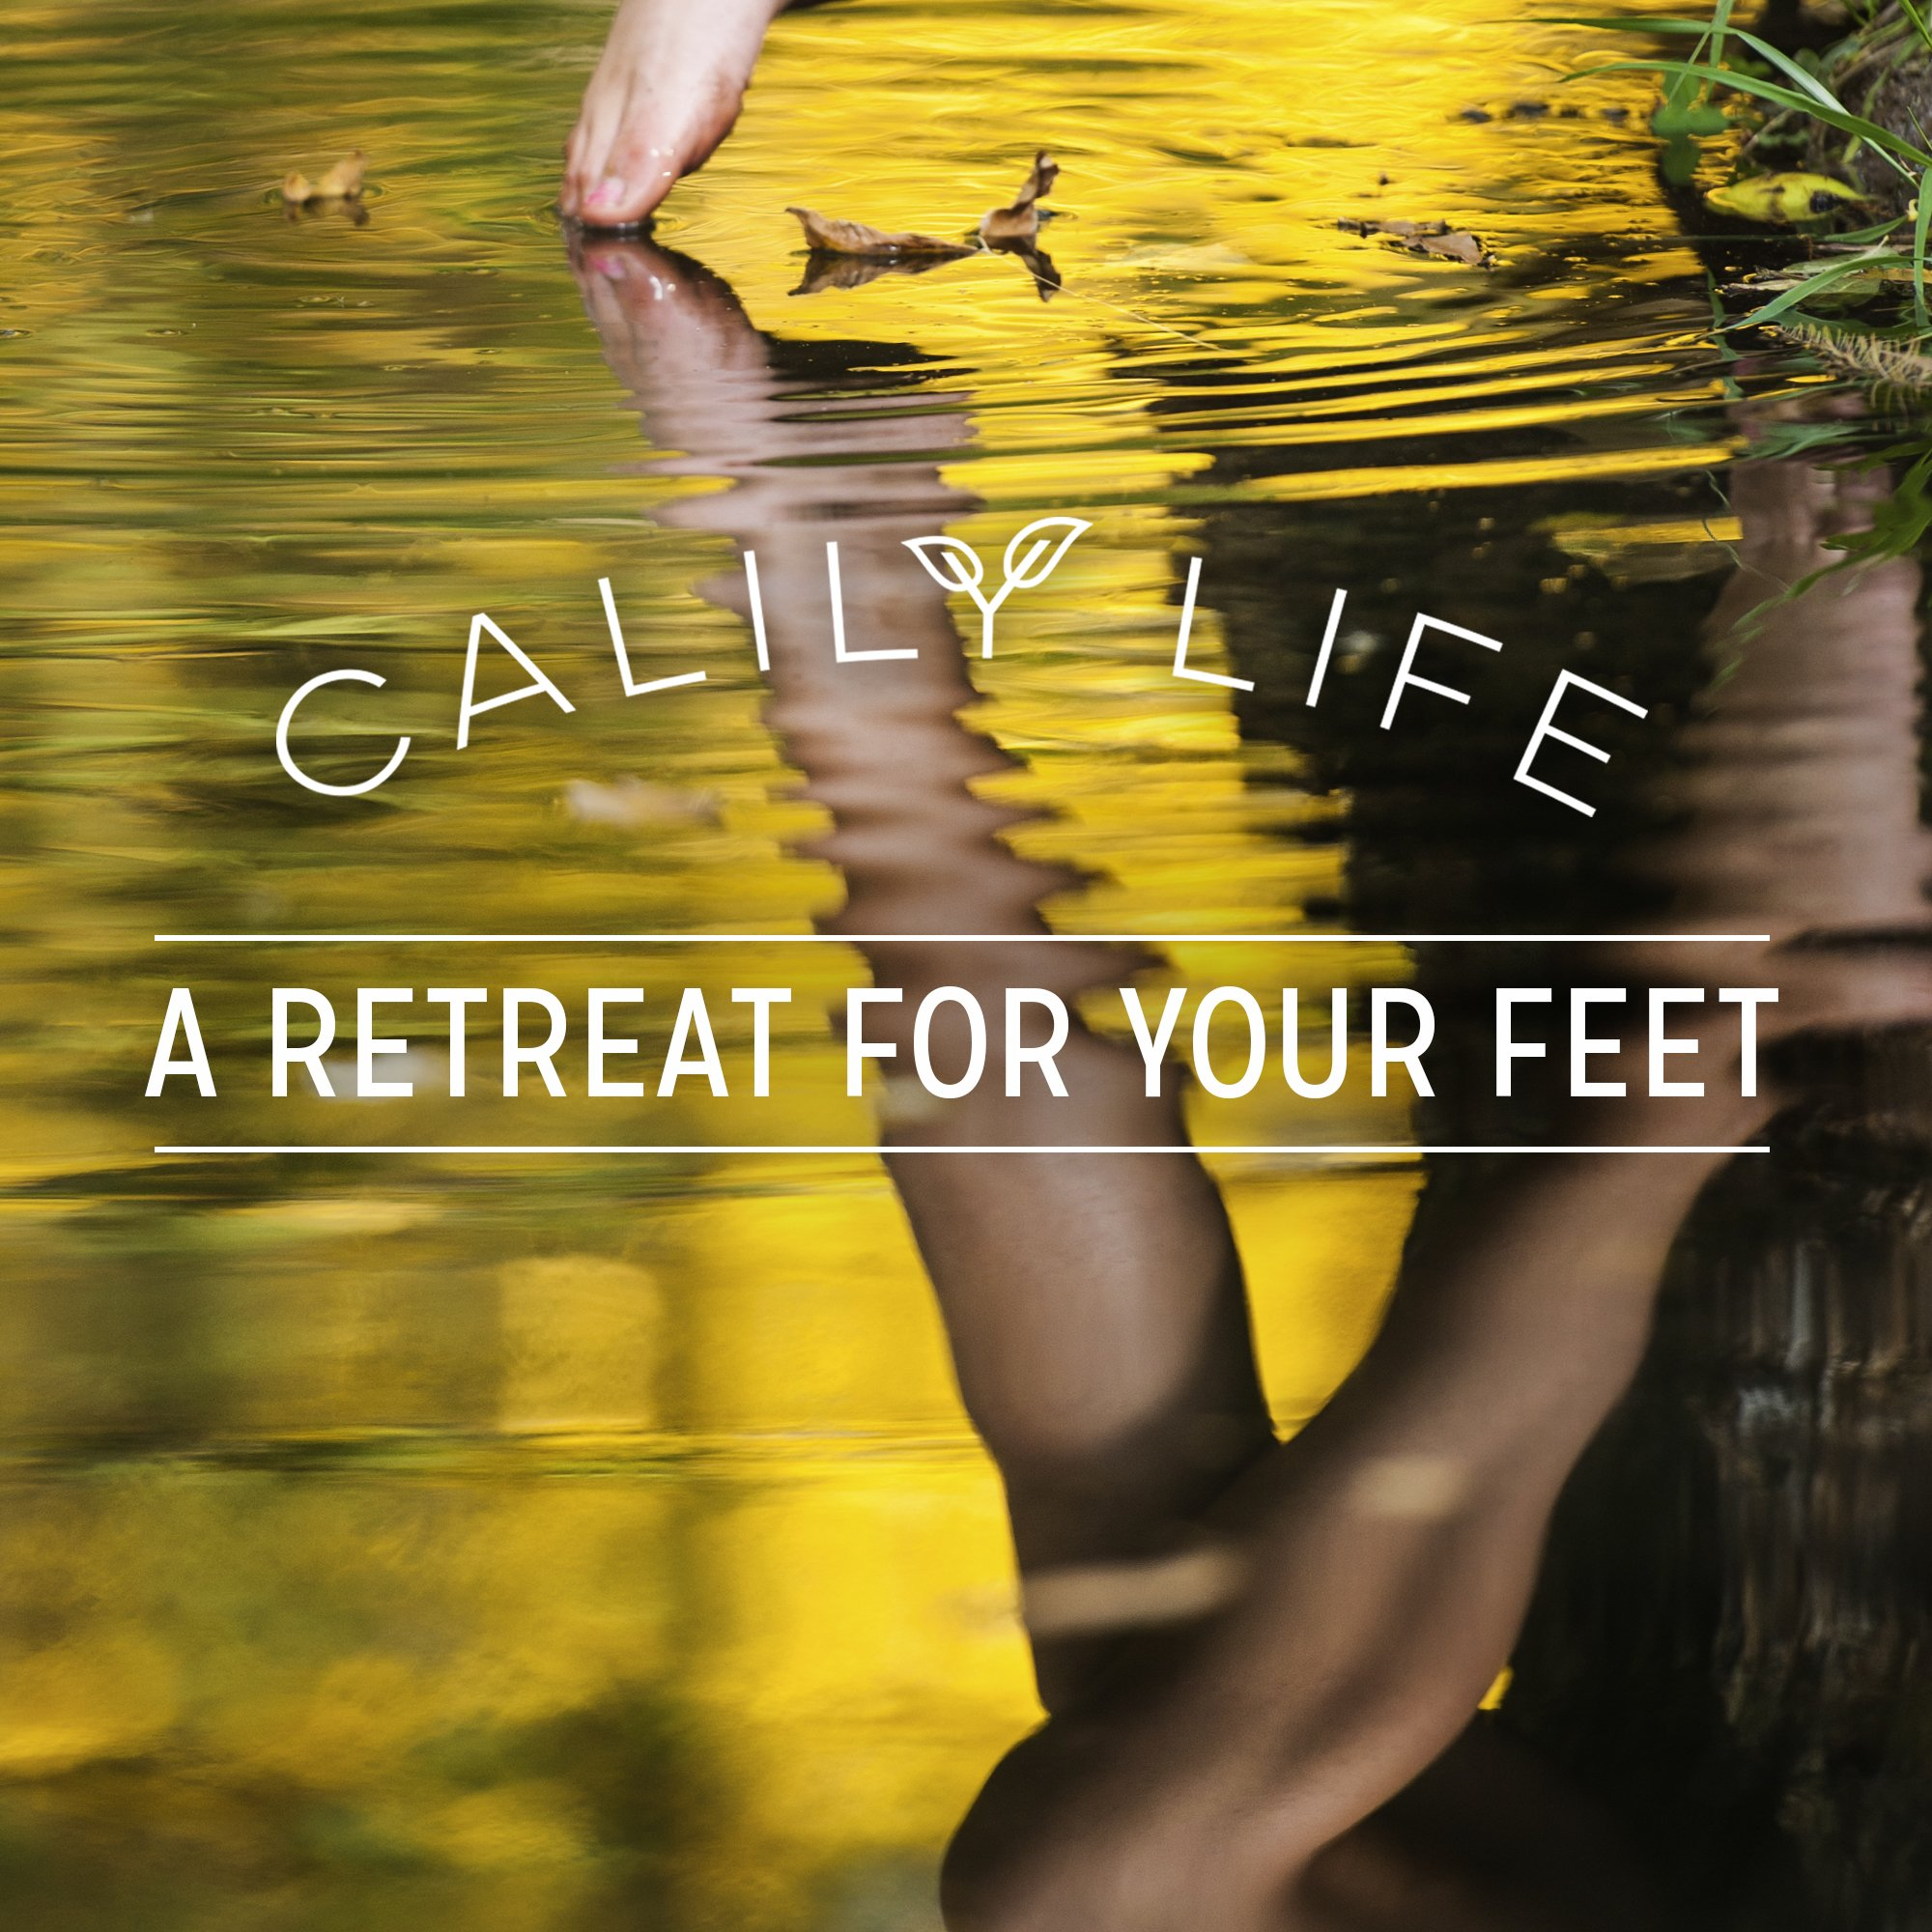 Calily Life Organic Tea Tree Oil Foot Soak with Natural Dead Sea Minerals , 17. 5 Oz. - Rejuvenate and Detox Tired & Achy Feet - Softens & Refreshes Feet, Eliminates Odors, Body scrub [ENHANCED]